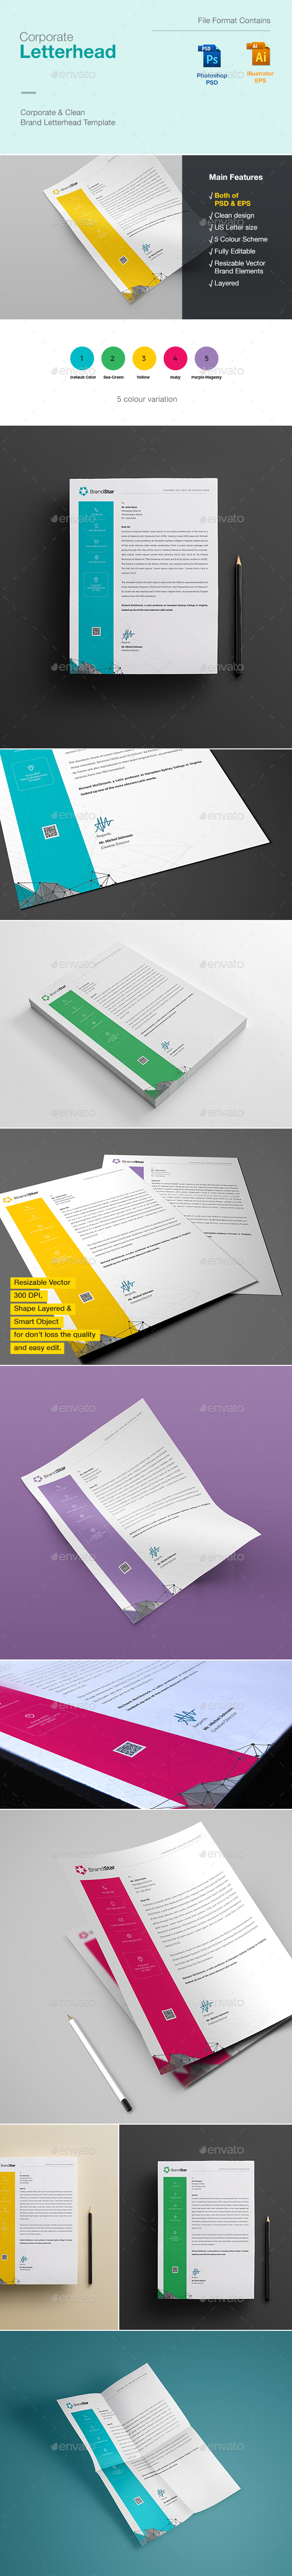 Letterhead design template psd vector eps letterhead design letterhead by graphicartist invoice designletterhead designpsd templatesprint spiritdancerdesigns Image collections